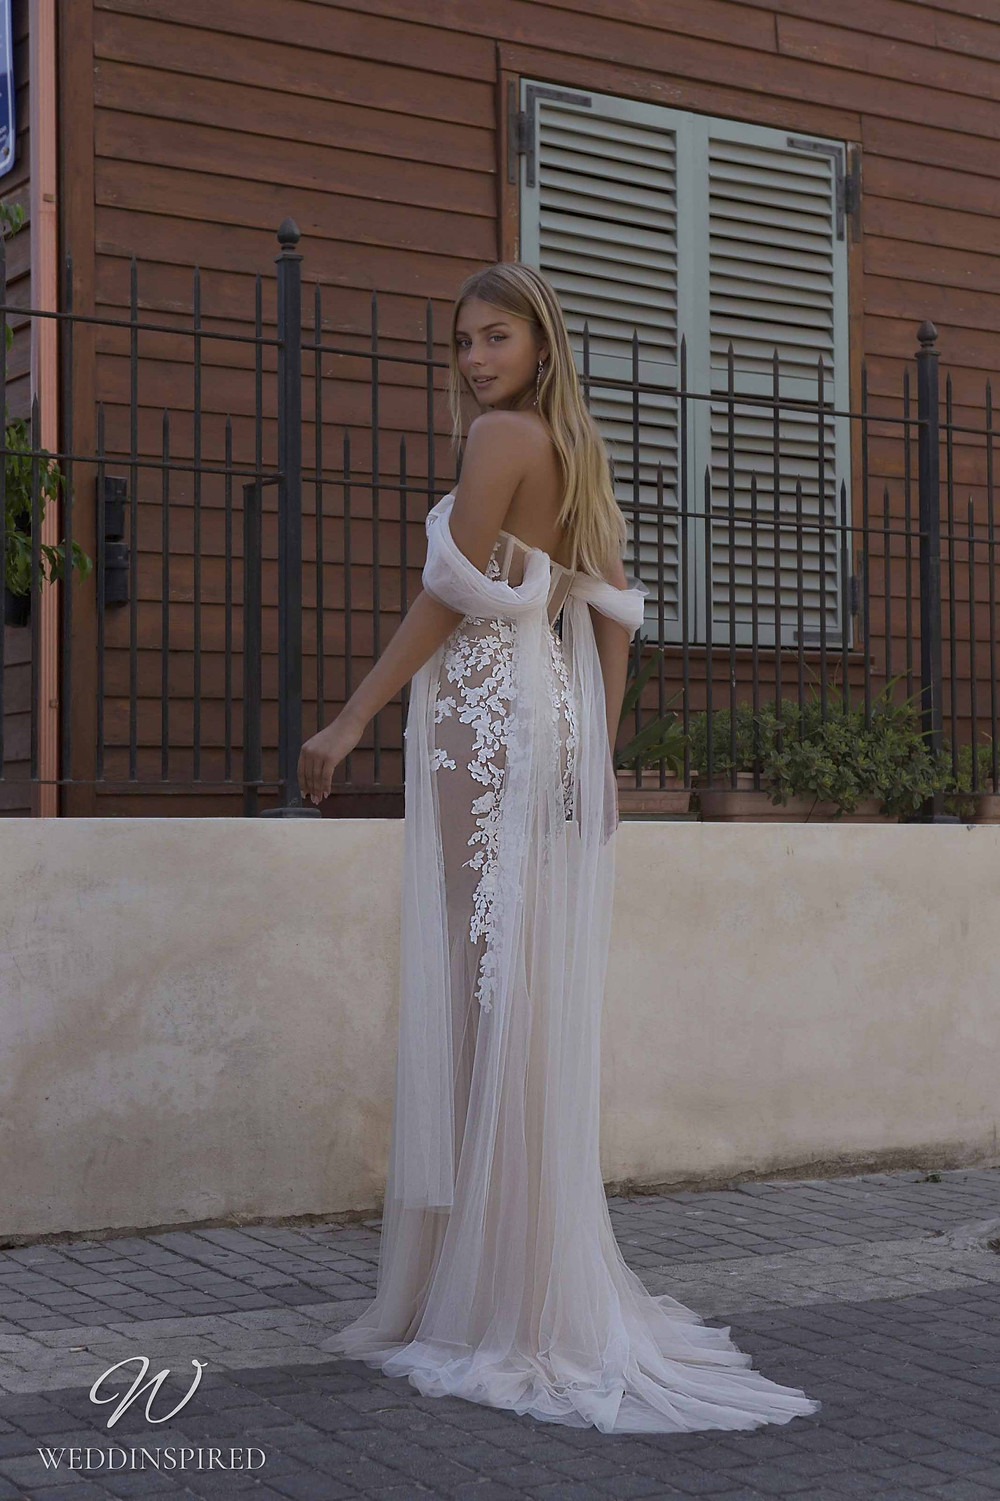 A Berta Priveé No 5 2021 nude off the shoulder lace and tulle mermaid wedding dress